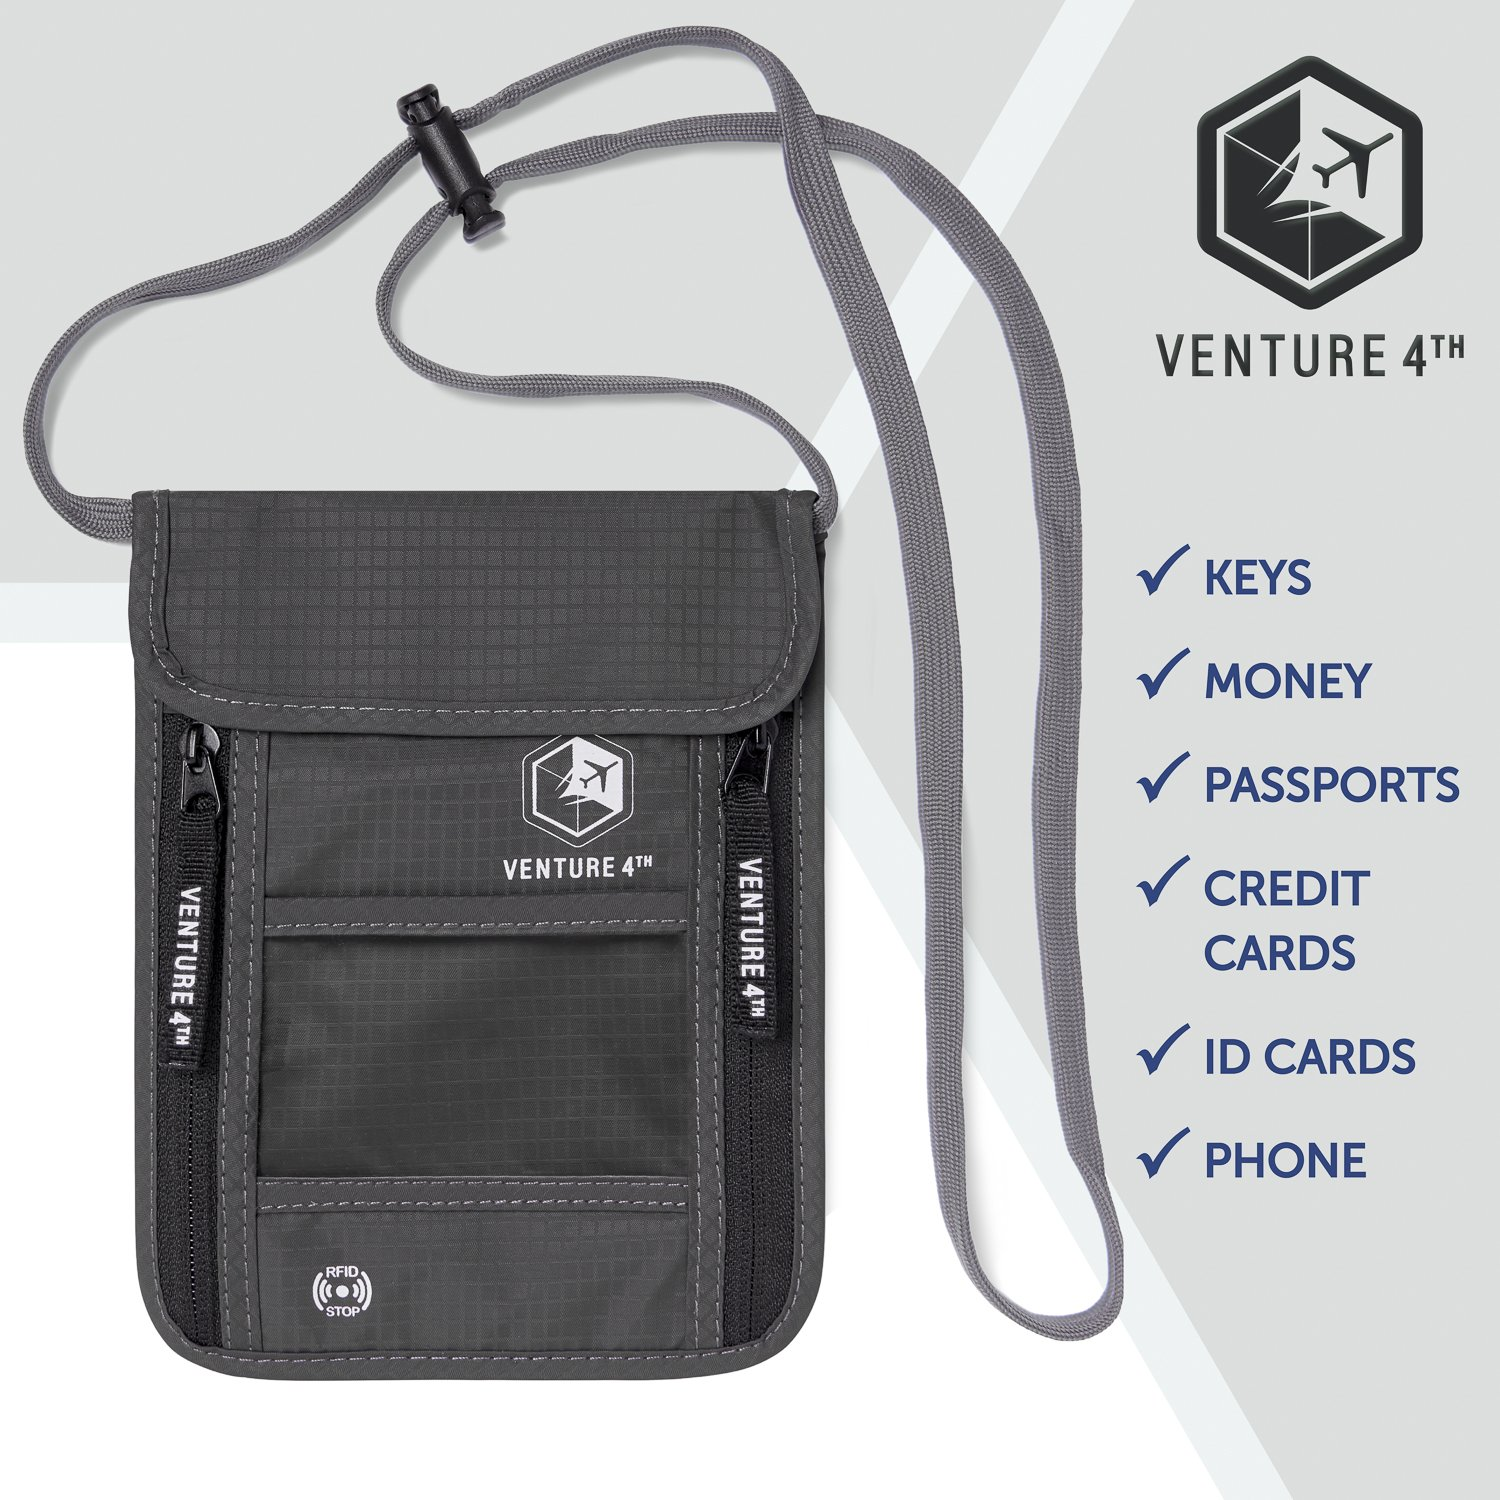 Venture 4th Travel Neck Pouch With RFID Blocking - Travel Wallet Passport Holder (Grey) by VENTURE 4TH (Image #8)